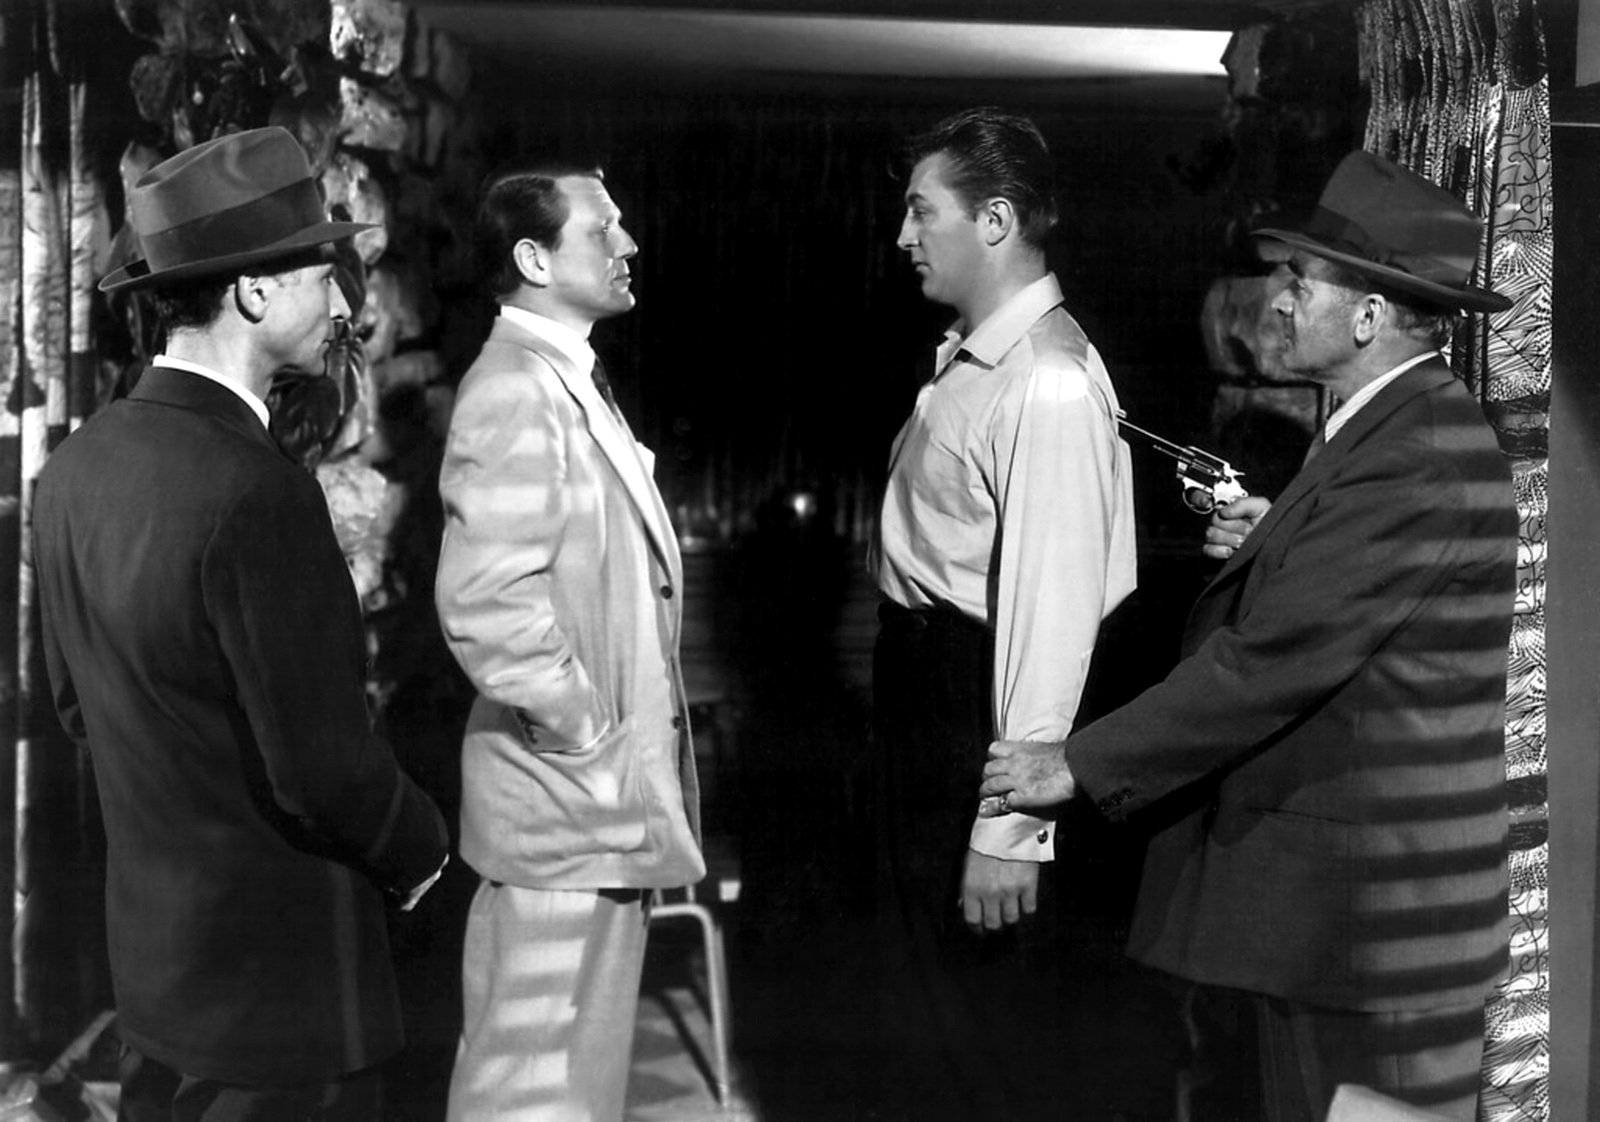 Robert Mitchum with Peter Brocco,Charles McGraw and MIke Lally.